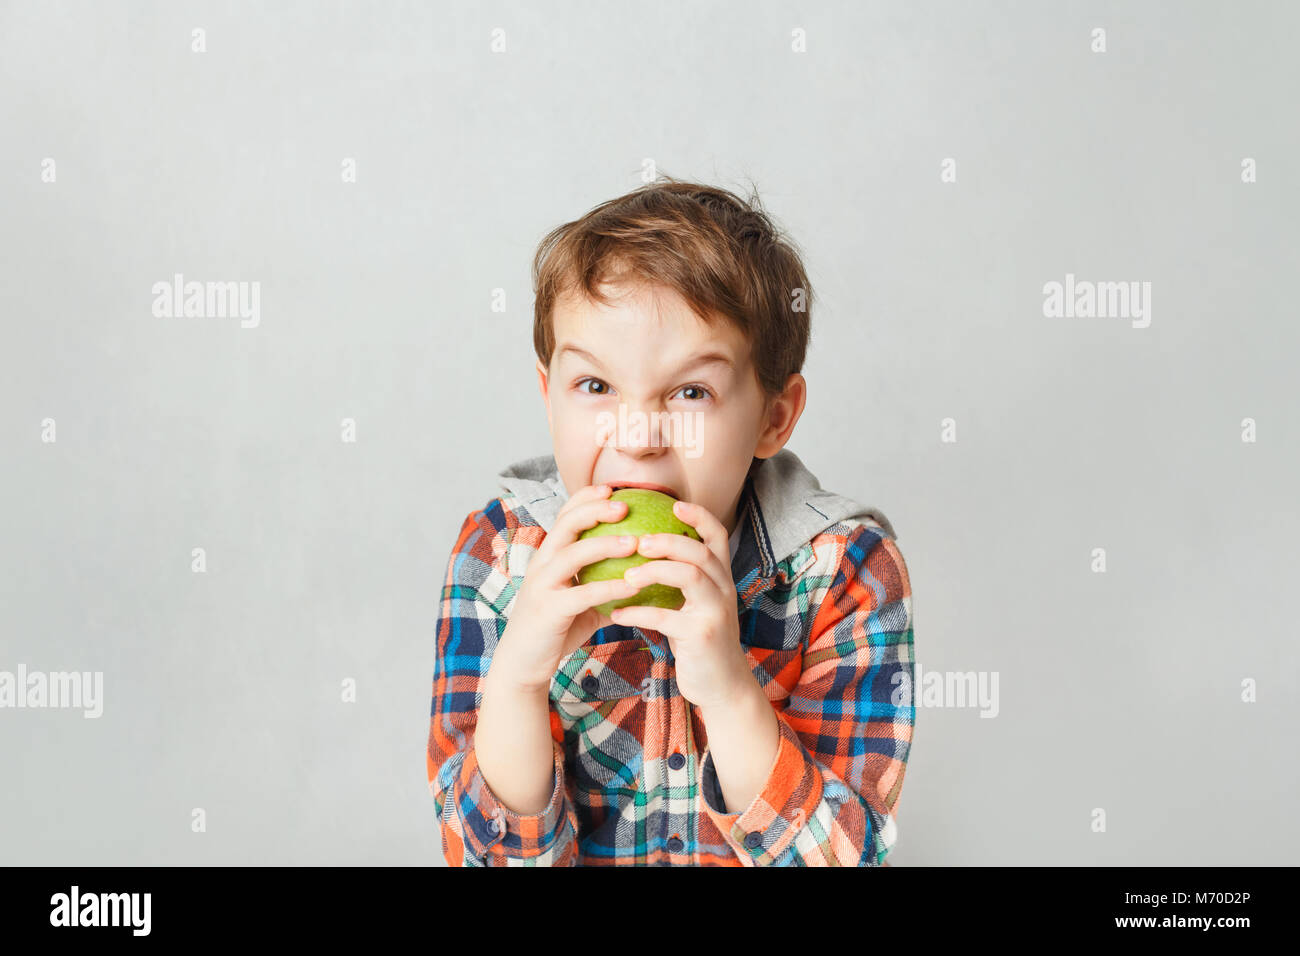 boy bites a green apple  in a checkered shirt, on a gray background - Stock Image